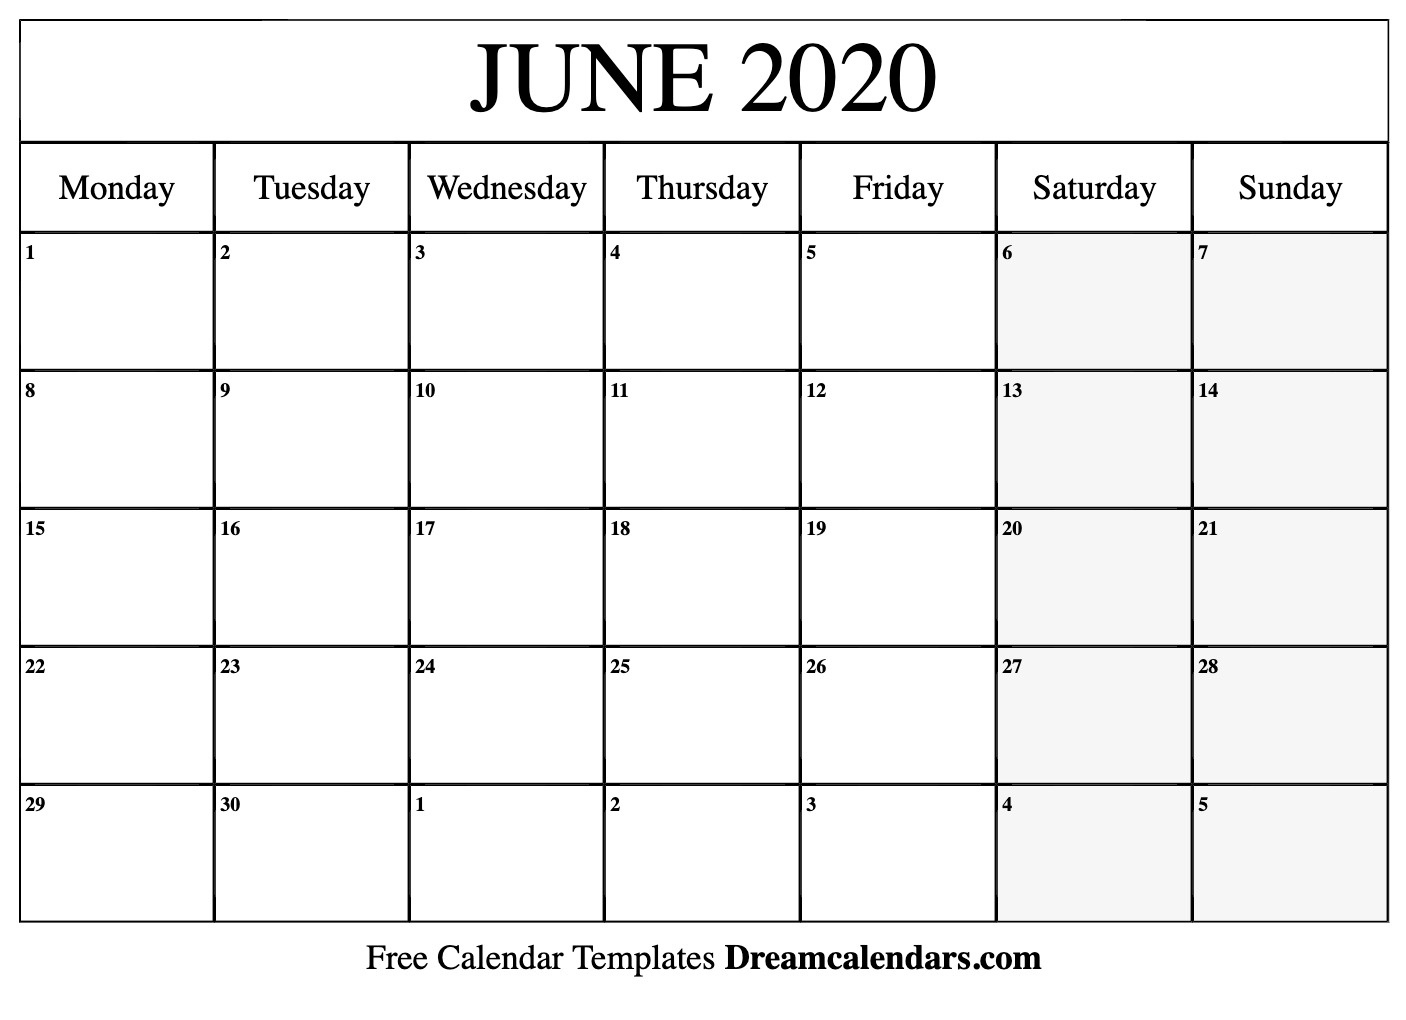 Printable June 2020 Calendar_Blank Calendar Of June 2020